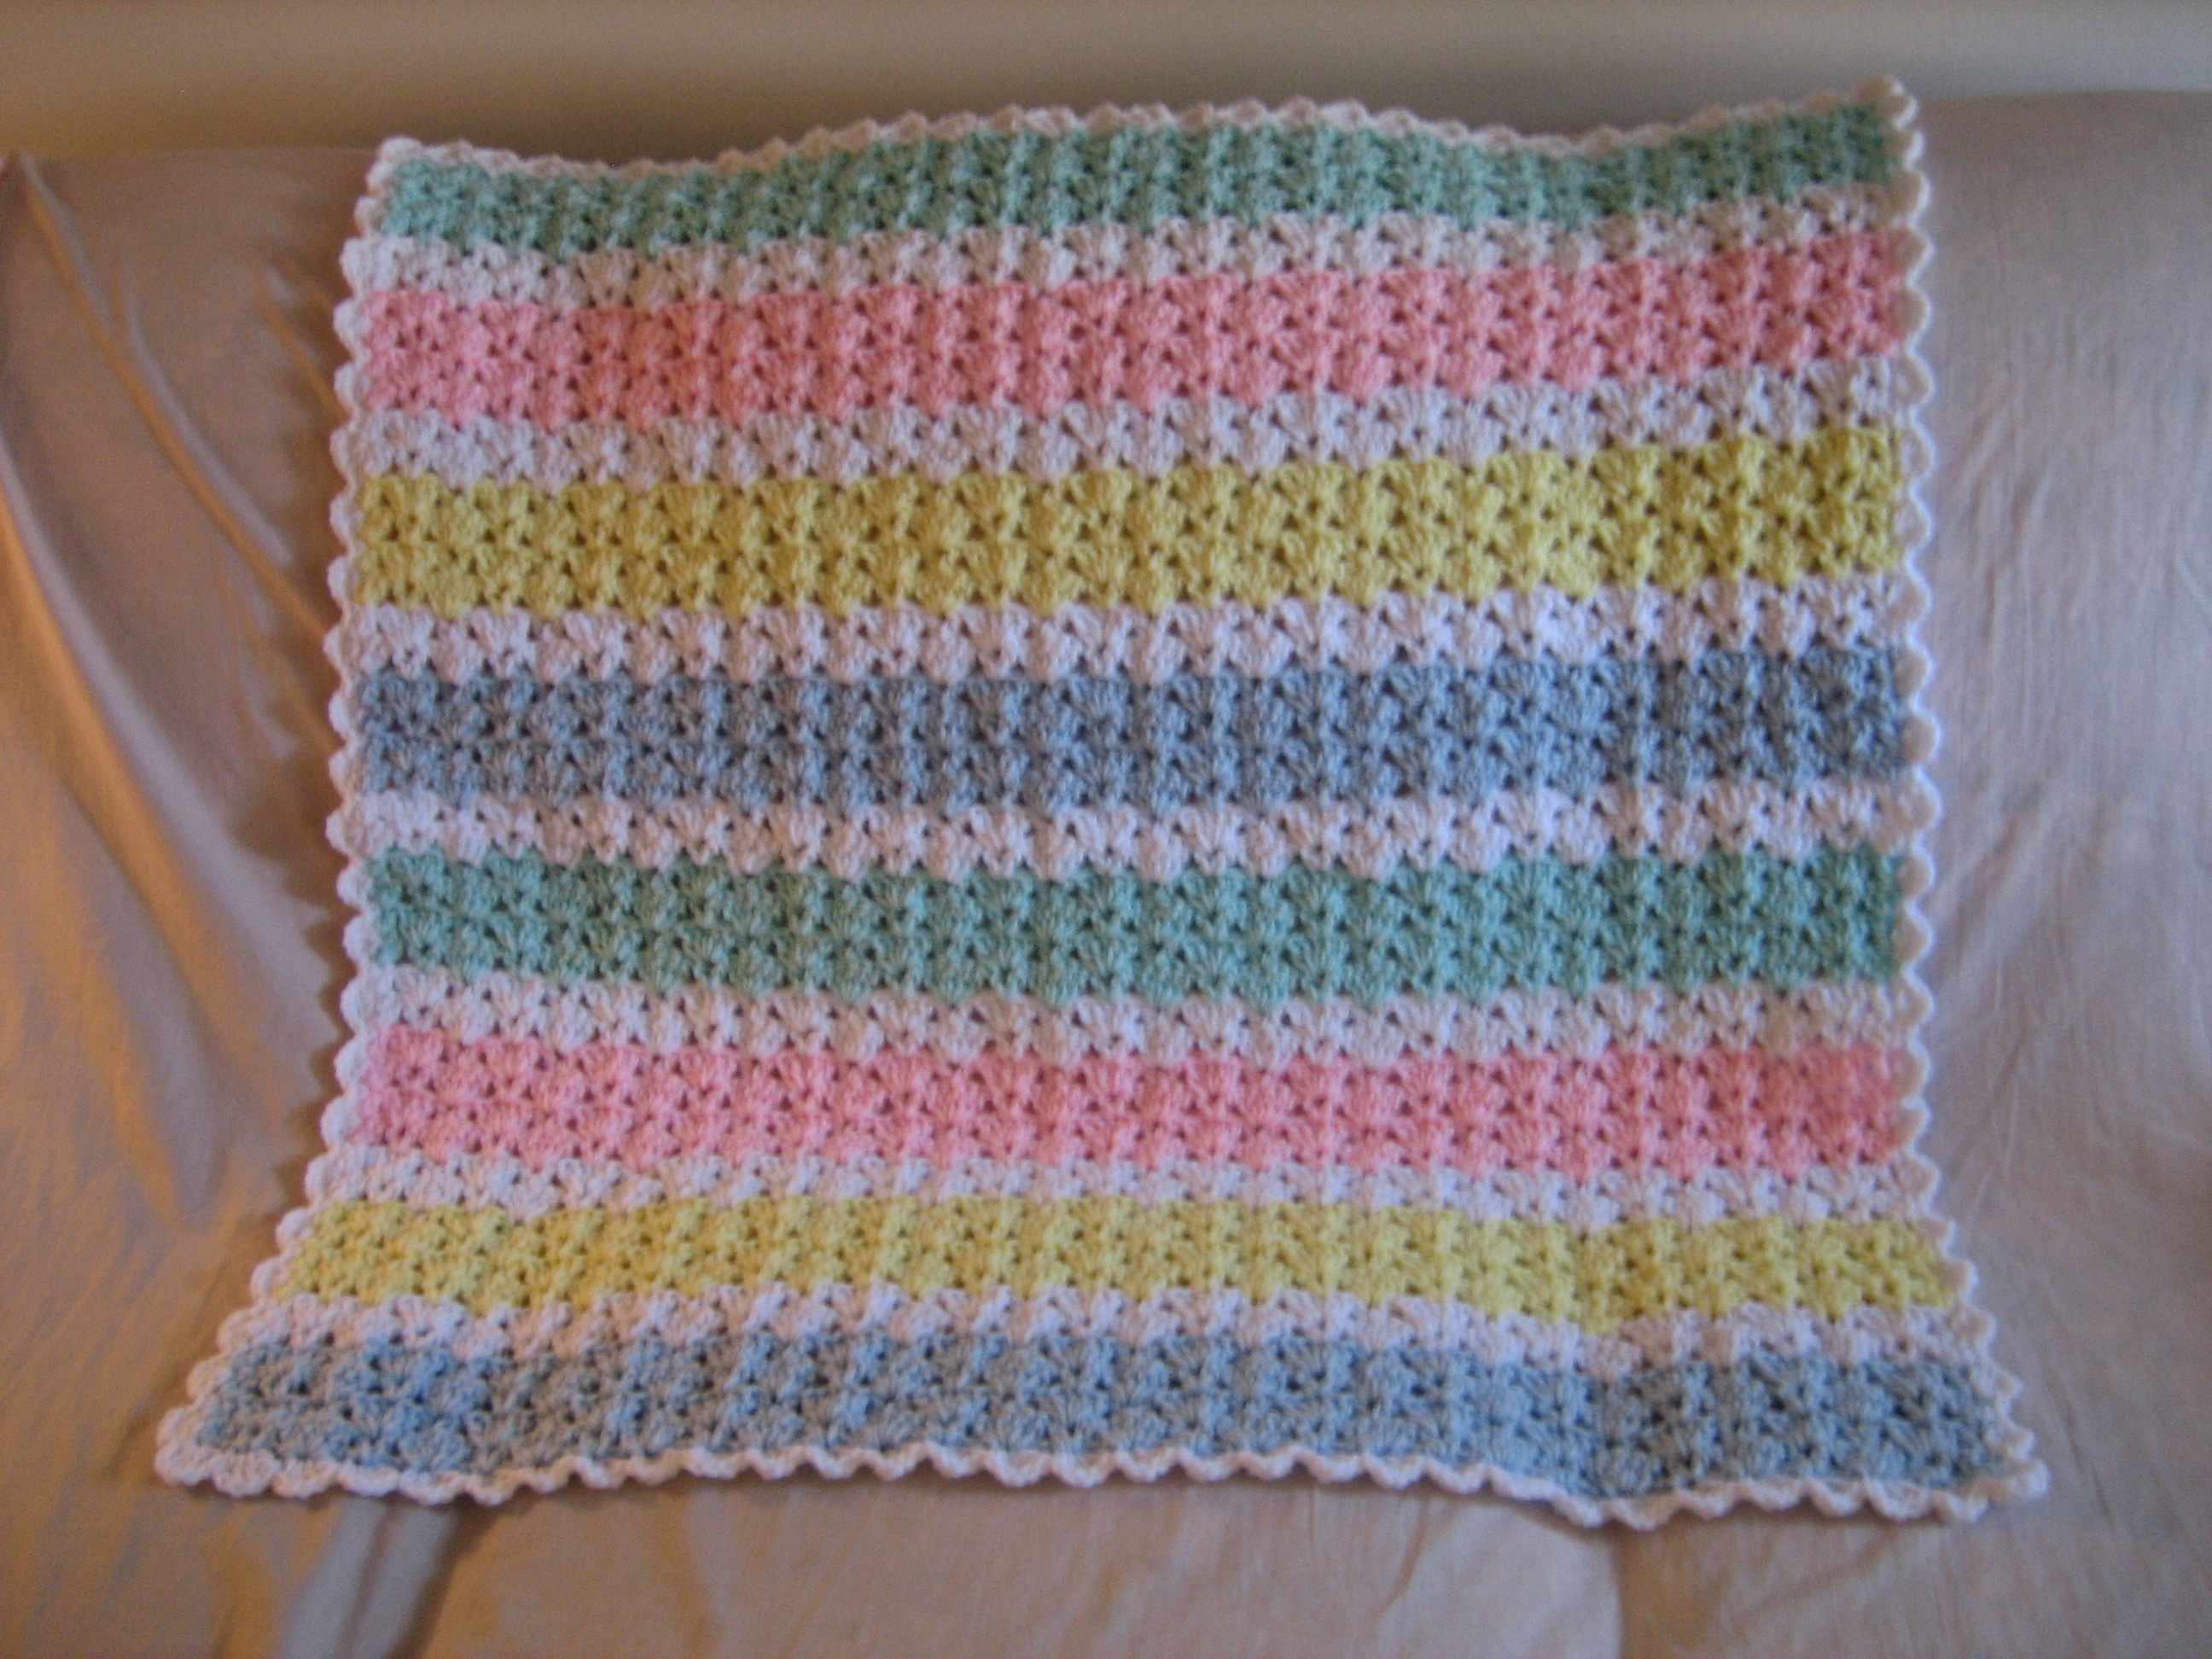 Easy Baby Afghan Crochet Patterns Best Of Pastel Baby Afghan Pattern Of Unique 42 Ideas Easy Baby Afghan Crochet Patterns